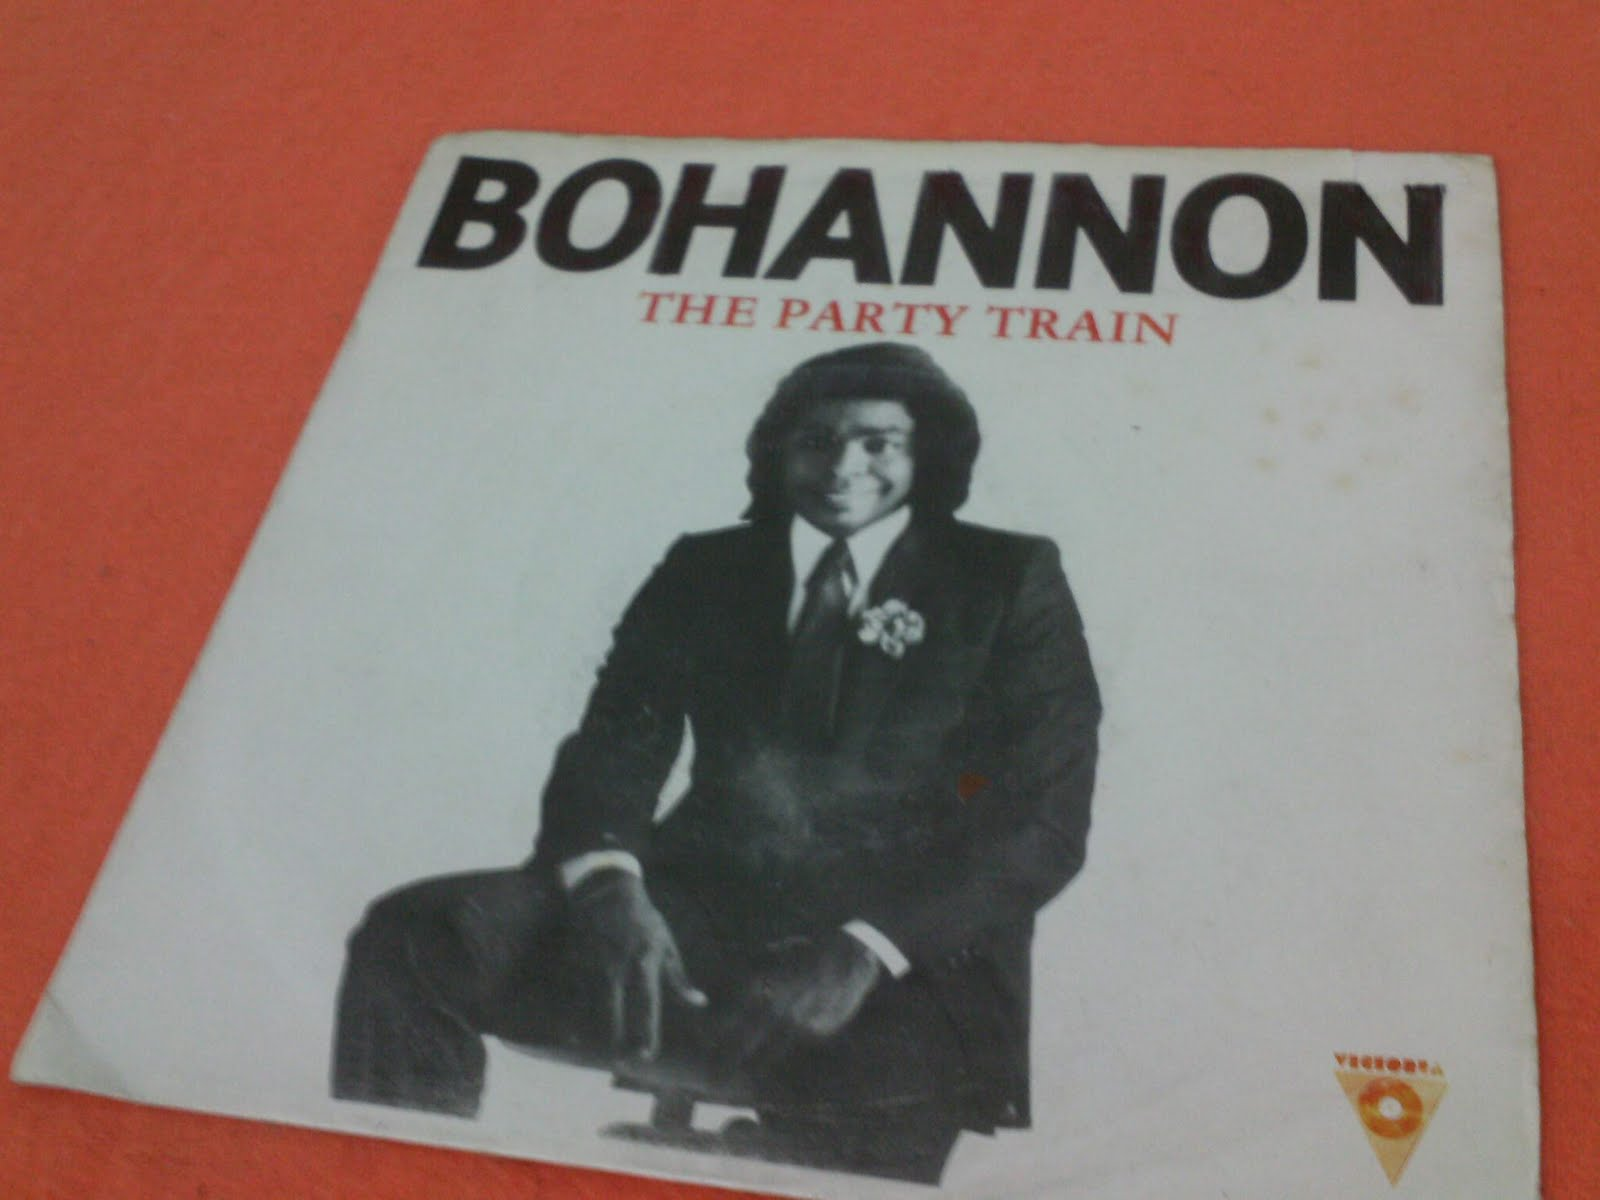 bohannon single personals Complete your hamilton bohannon record collection discover hamilton bohannon's full discography shop new and used vinyl and cds.